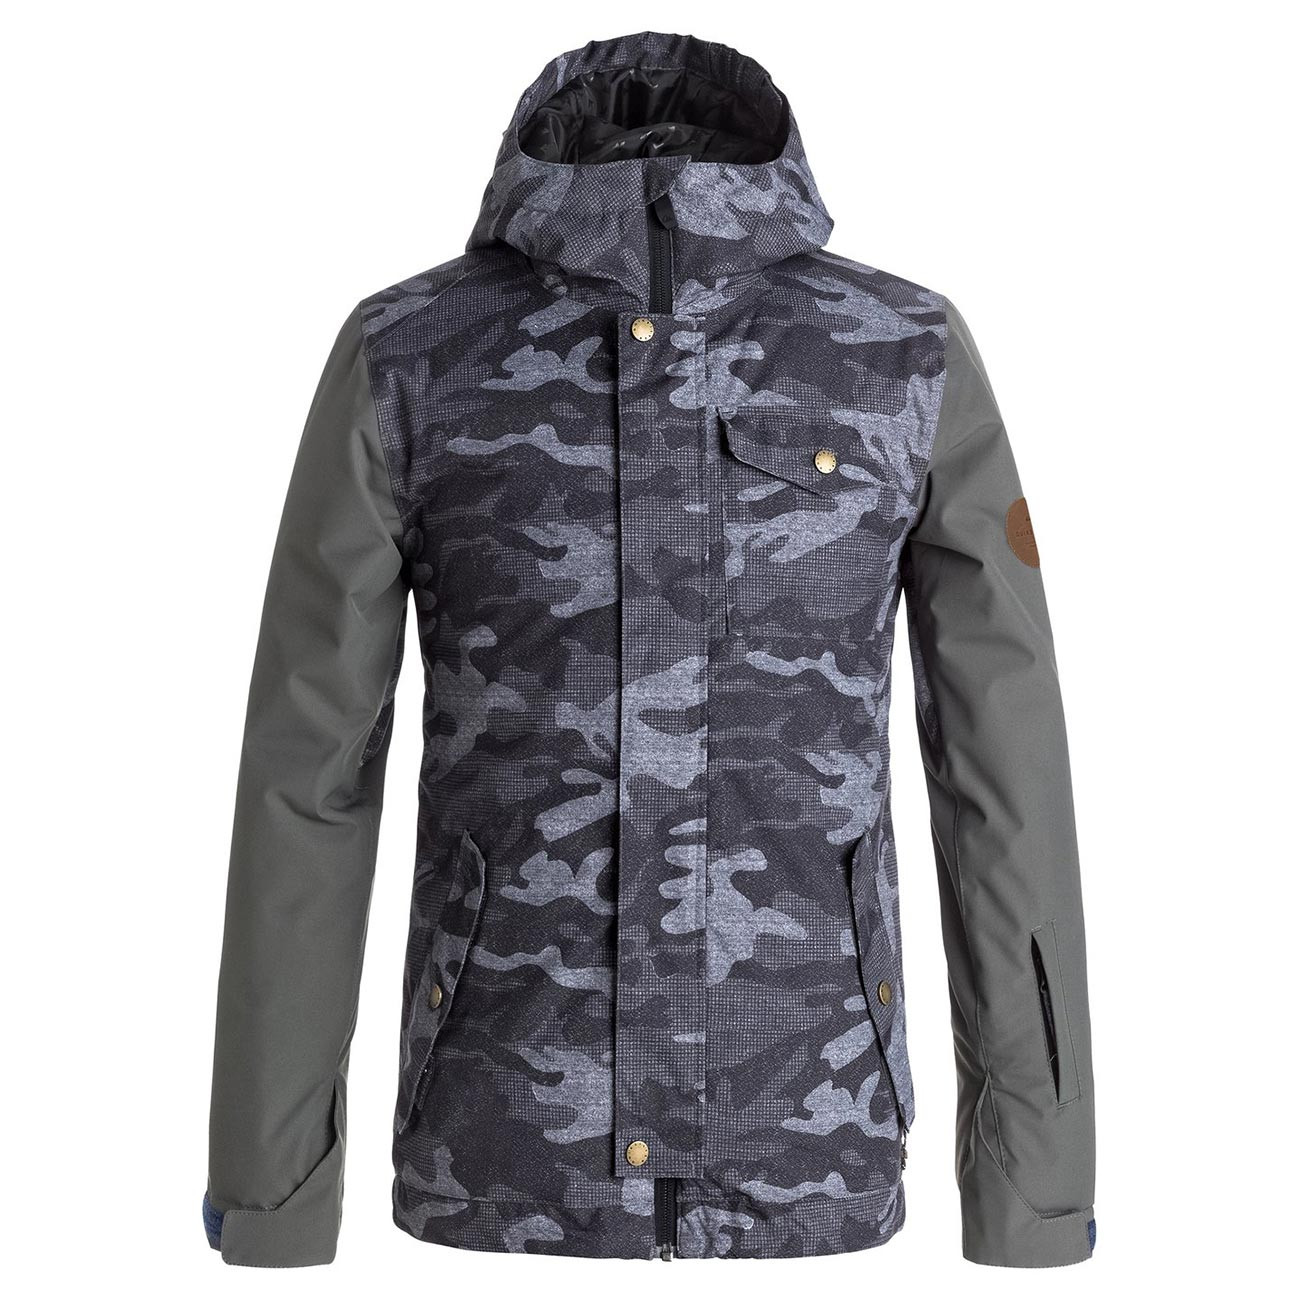 Bunda Quiksilver Ridge Youth black grey camokazi